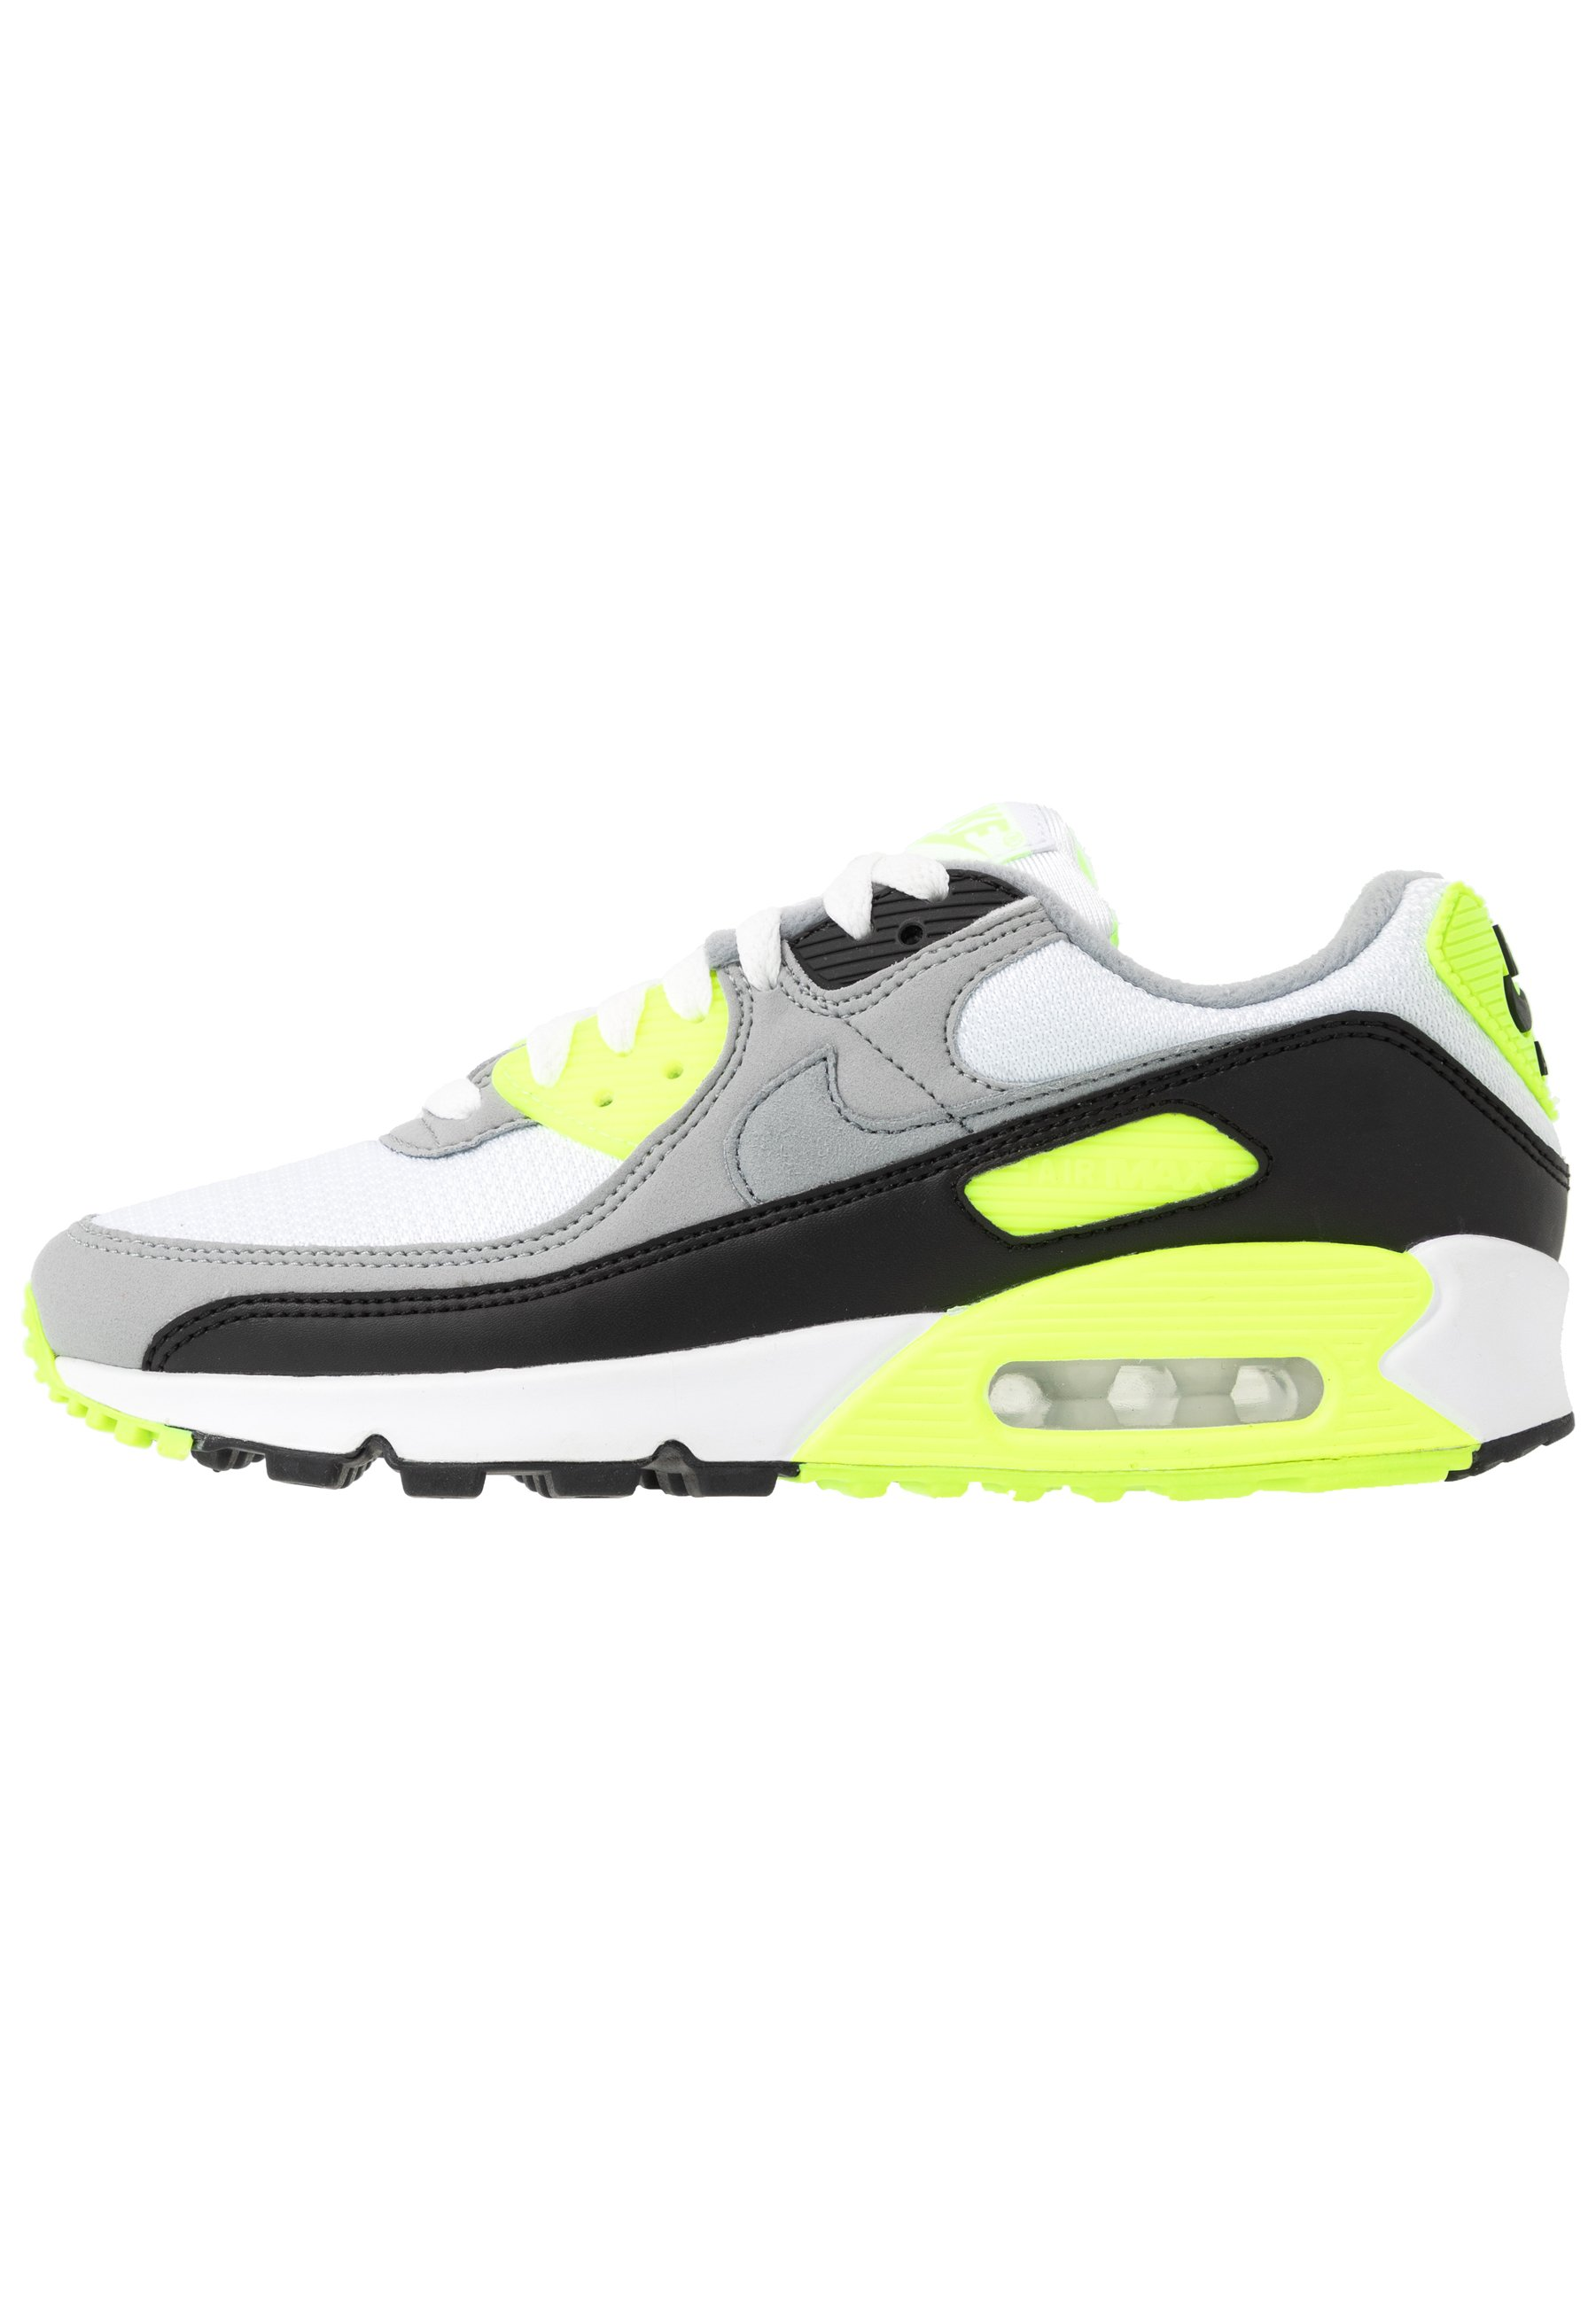 AIR MAX 90 Trainers whiteparticle greyvoltblacklight smoke grey